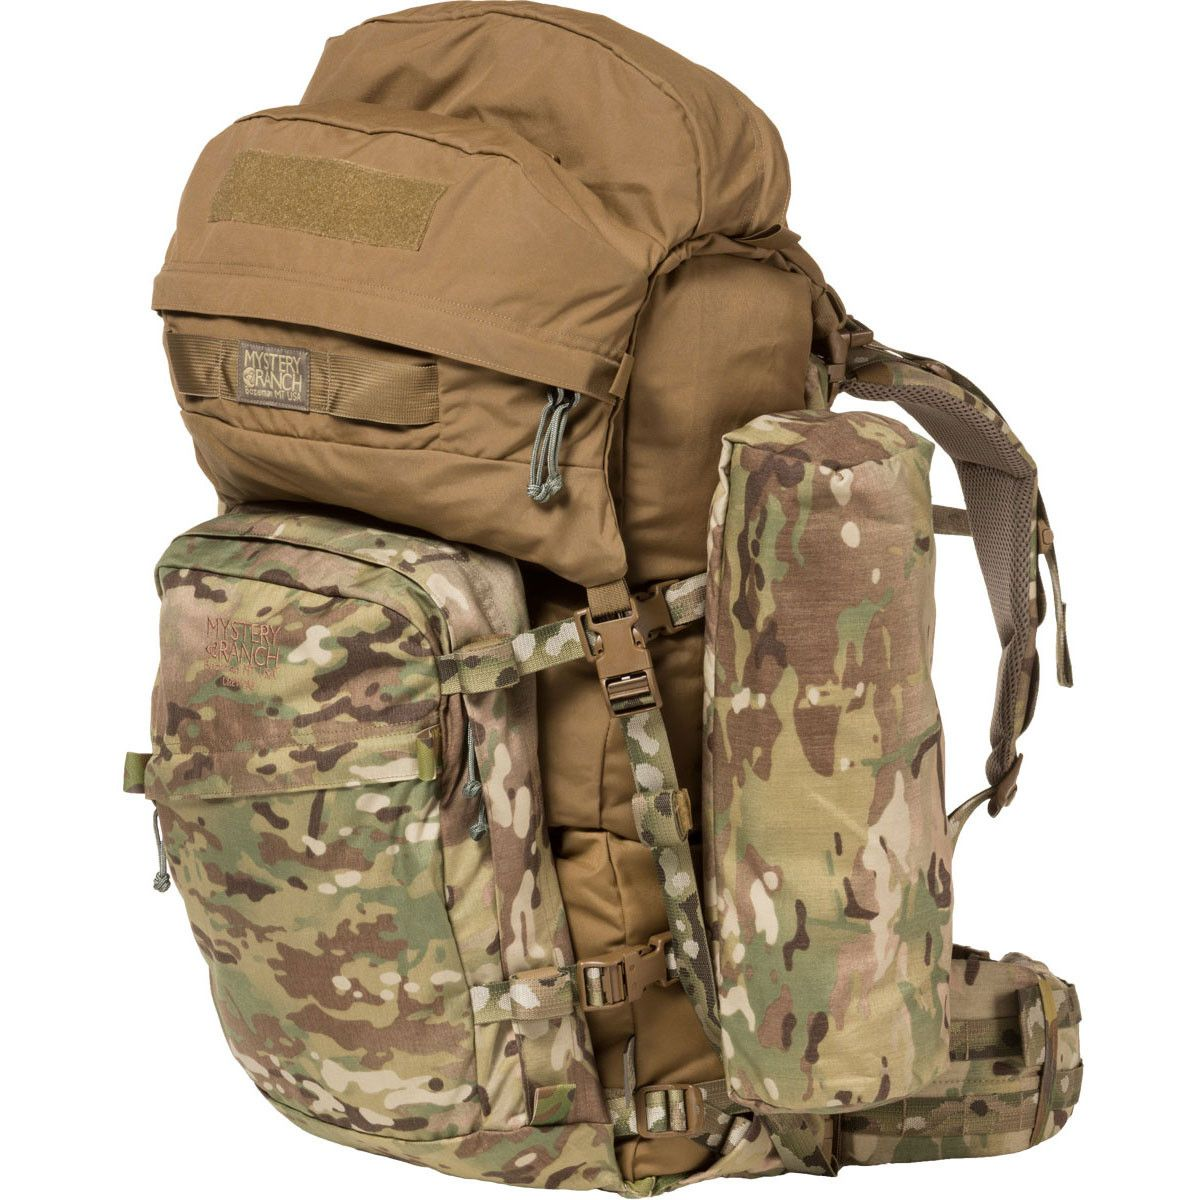 Crewcab Bvs Pack Mystery Ranch Backpacks Cool Guy Gear